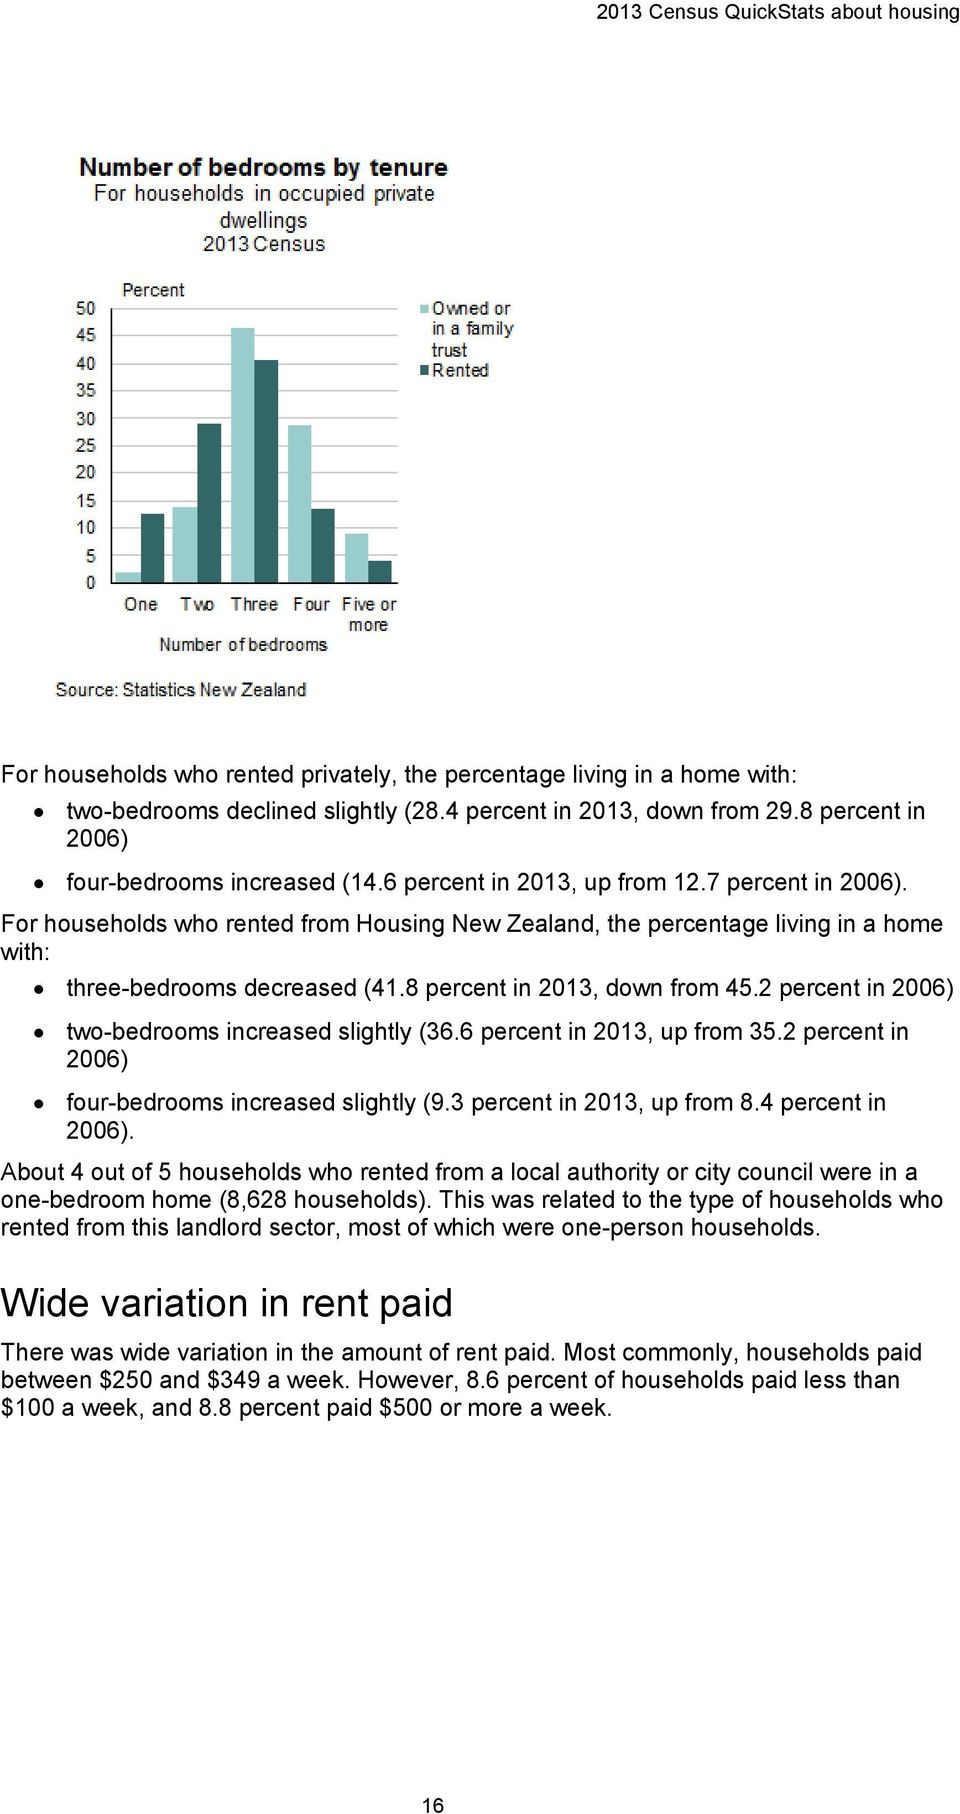 For households who rented from Housing New Zealand, the percentage living in a home with: three-bedrooms decreased (41.8 percent in 2013, down from 45.